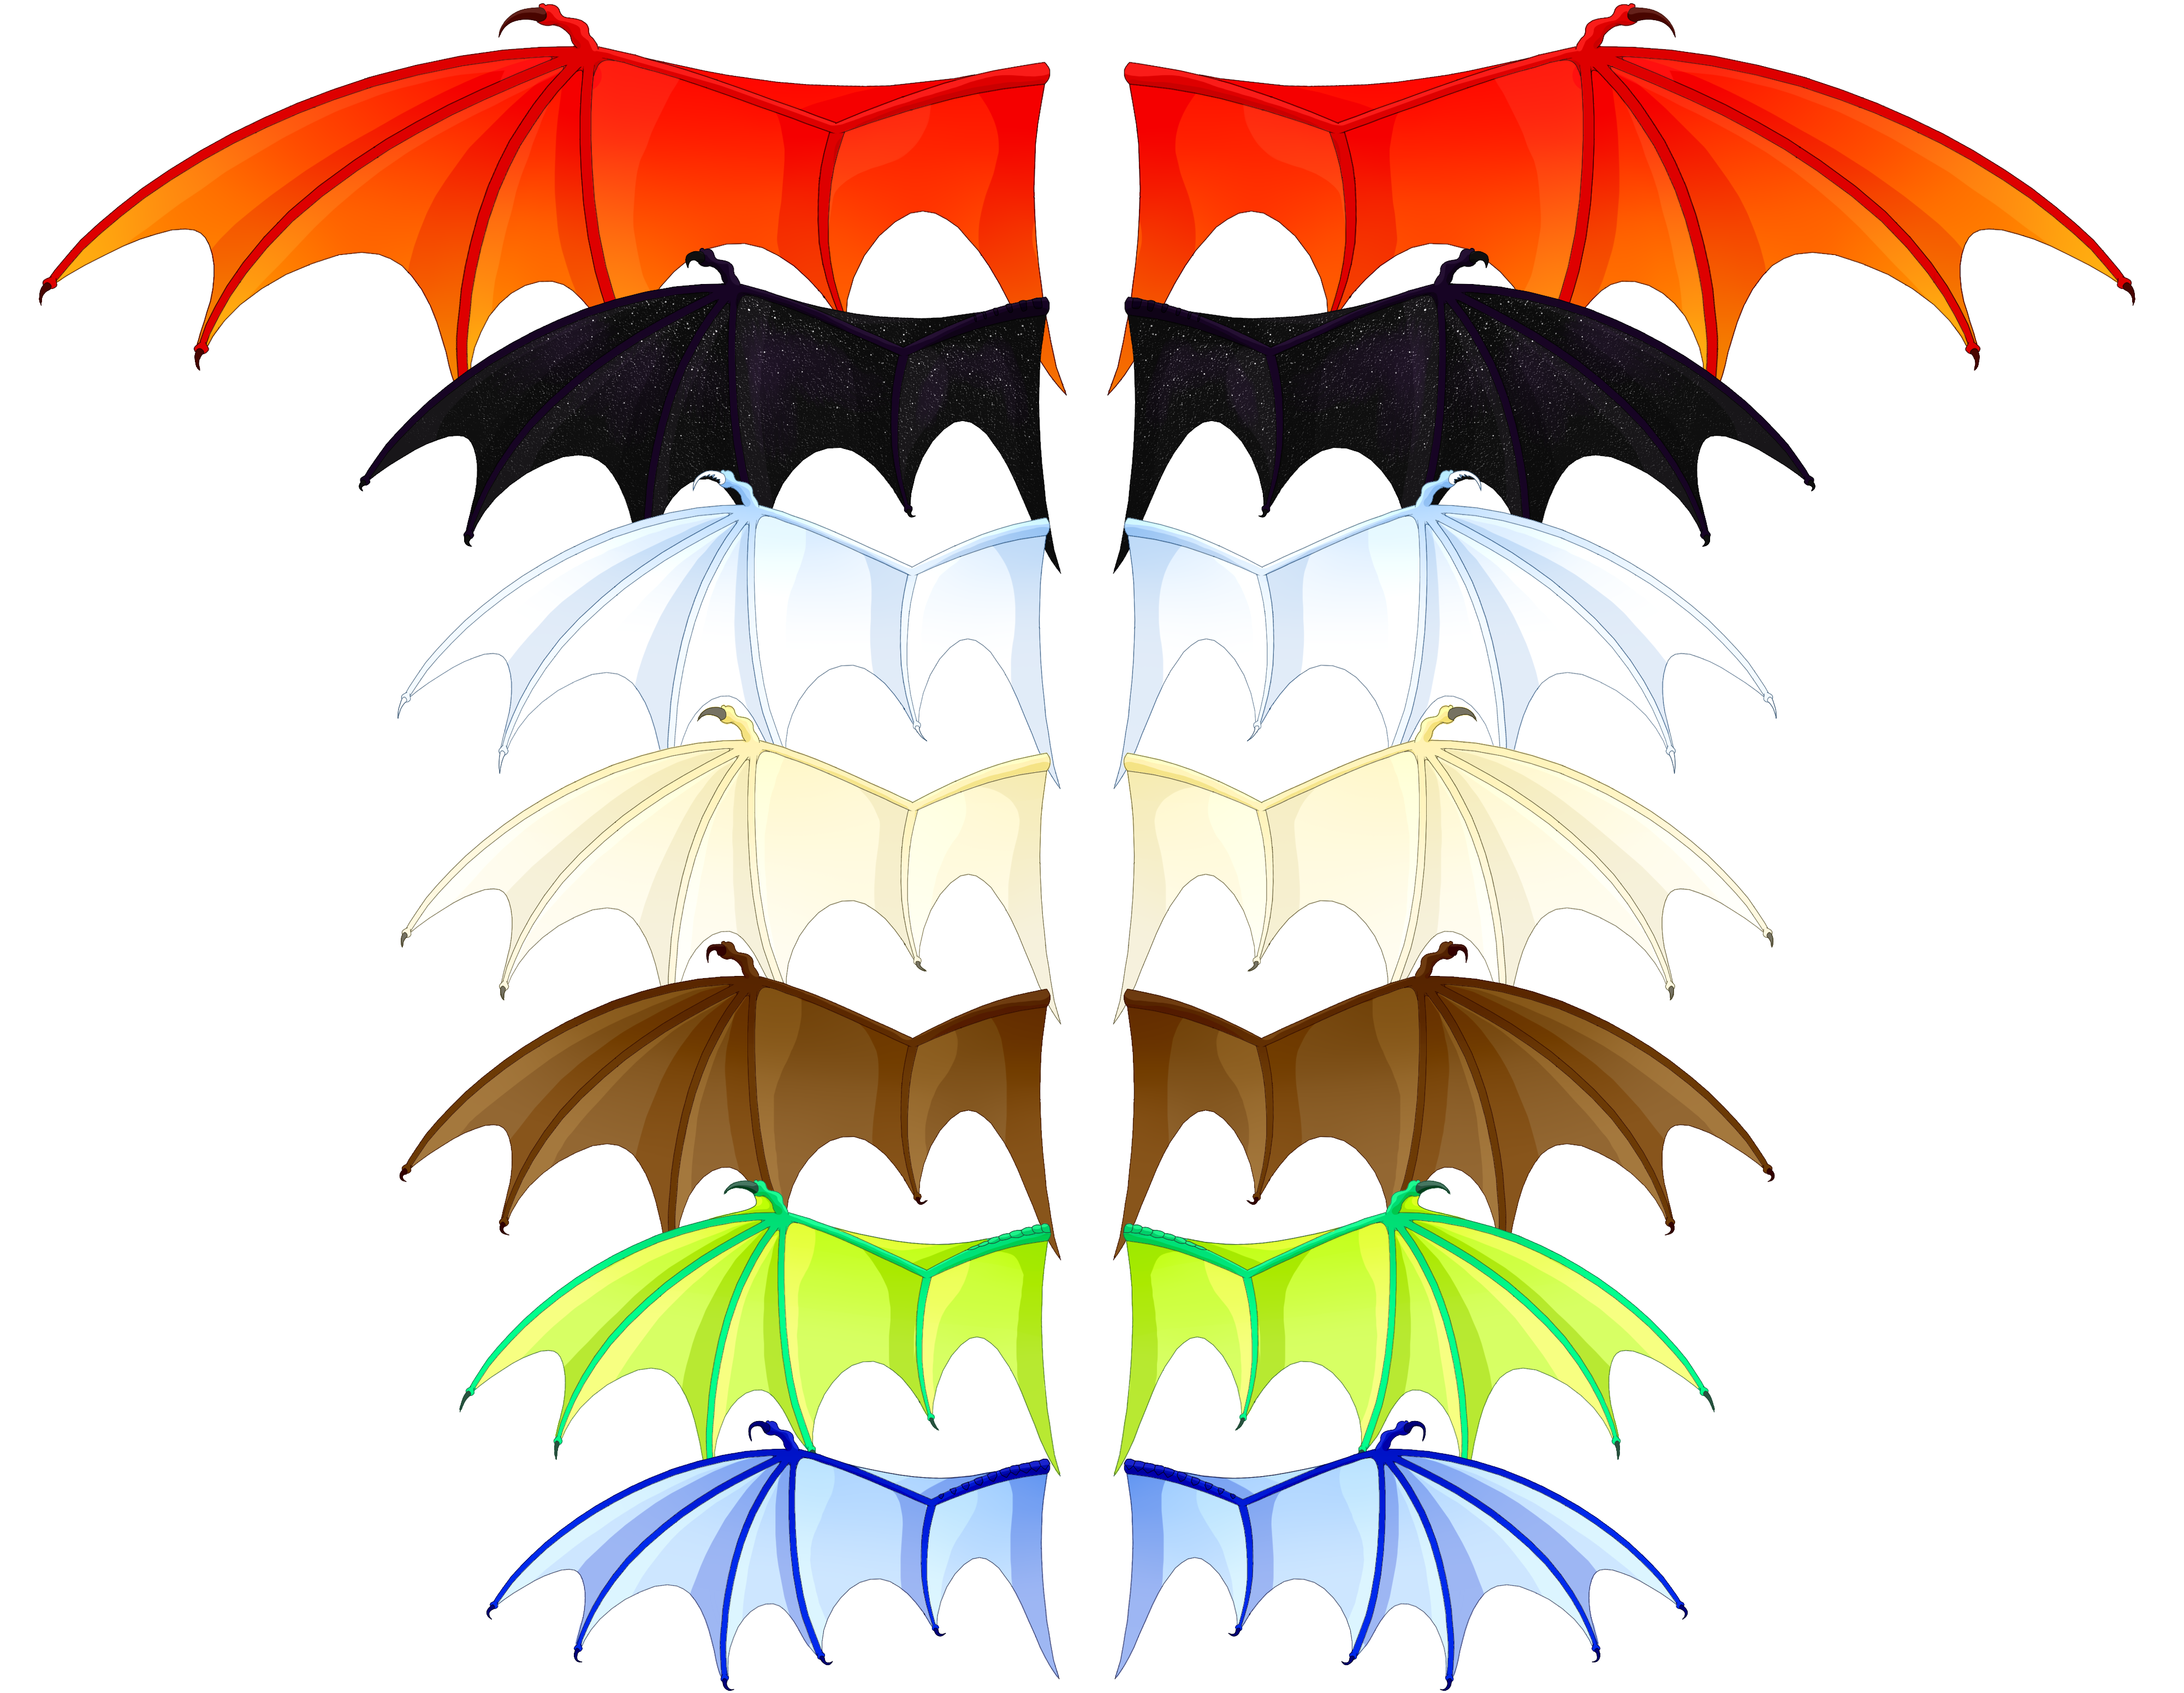 Wings Of Fire Wing Concepts Wings Of Fire Dragons Wings Of Fire Fire Sketch 1 background 2 involvement 2.1 dragon age: pinterest